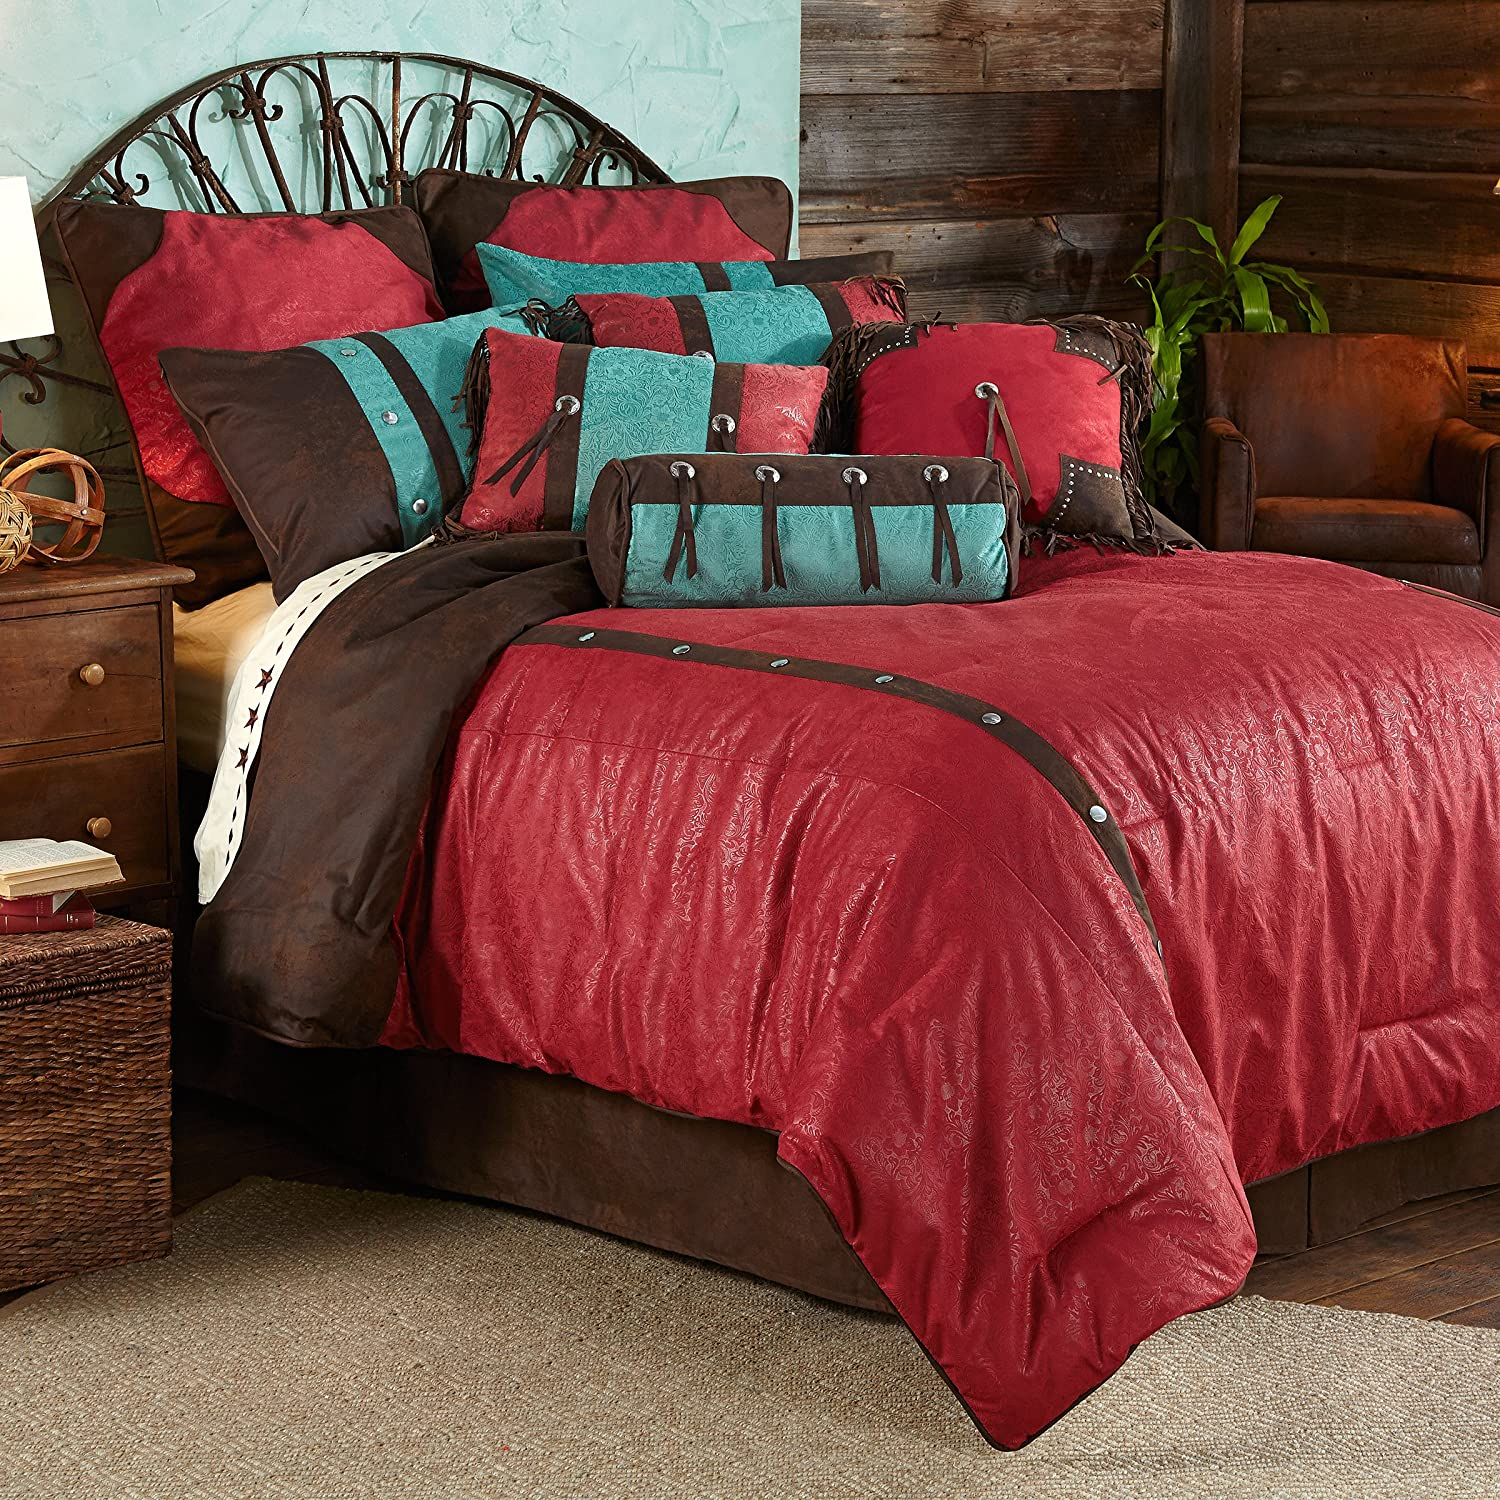 HiEnd Accents Red Cheyenne Western Comforter Set, Super Queen